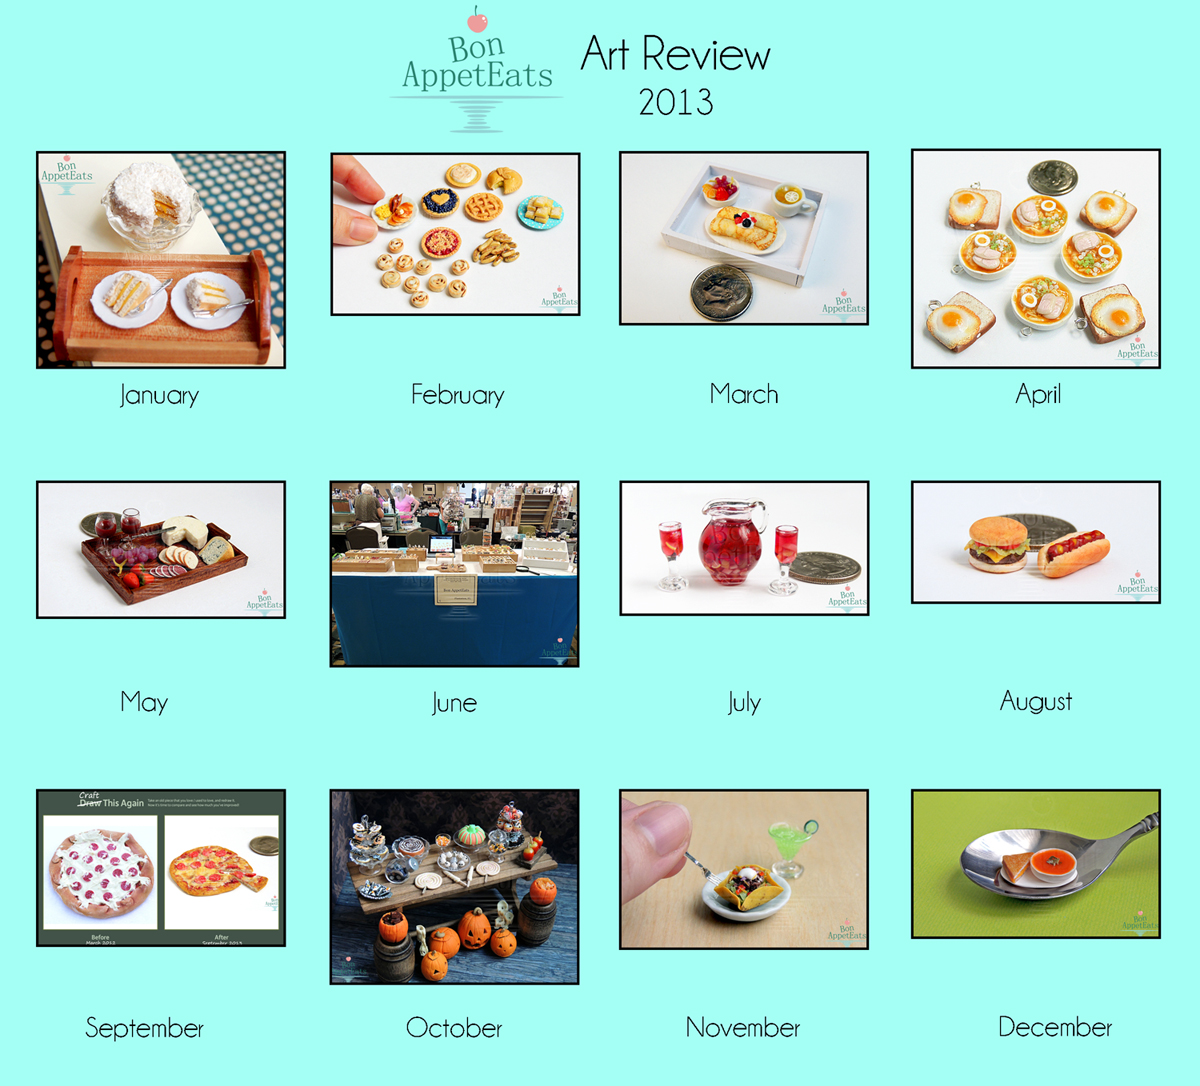 2013 Art Review by Bon-AppetEats